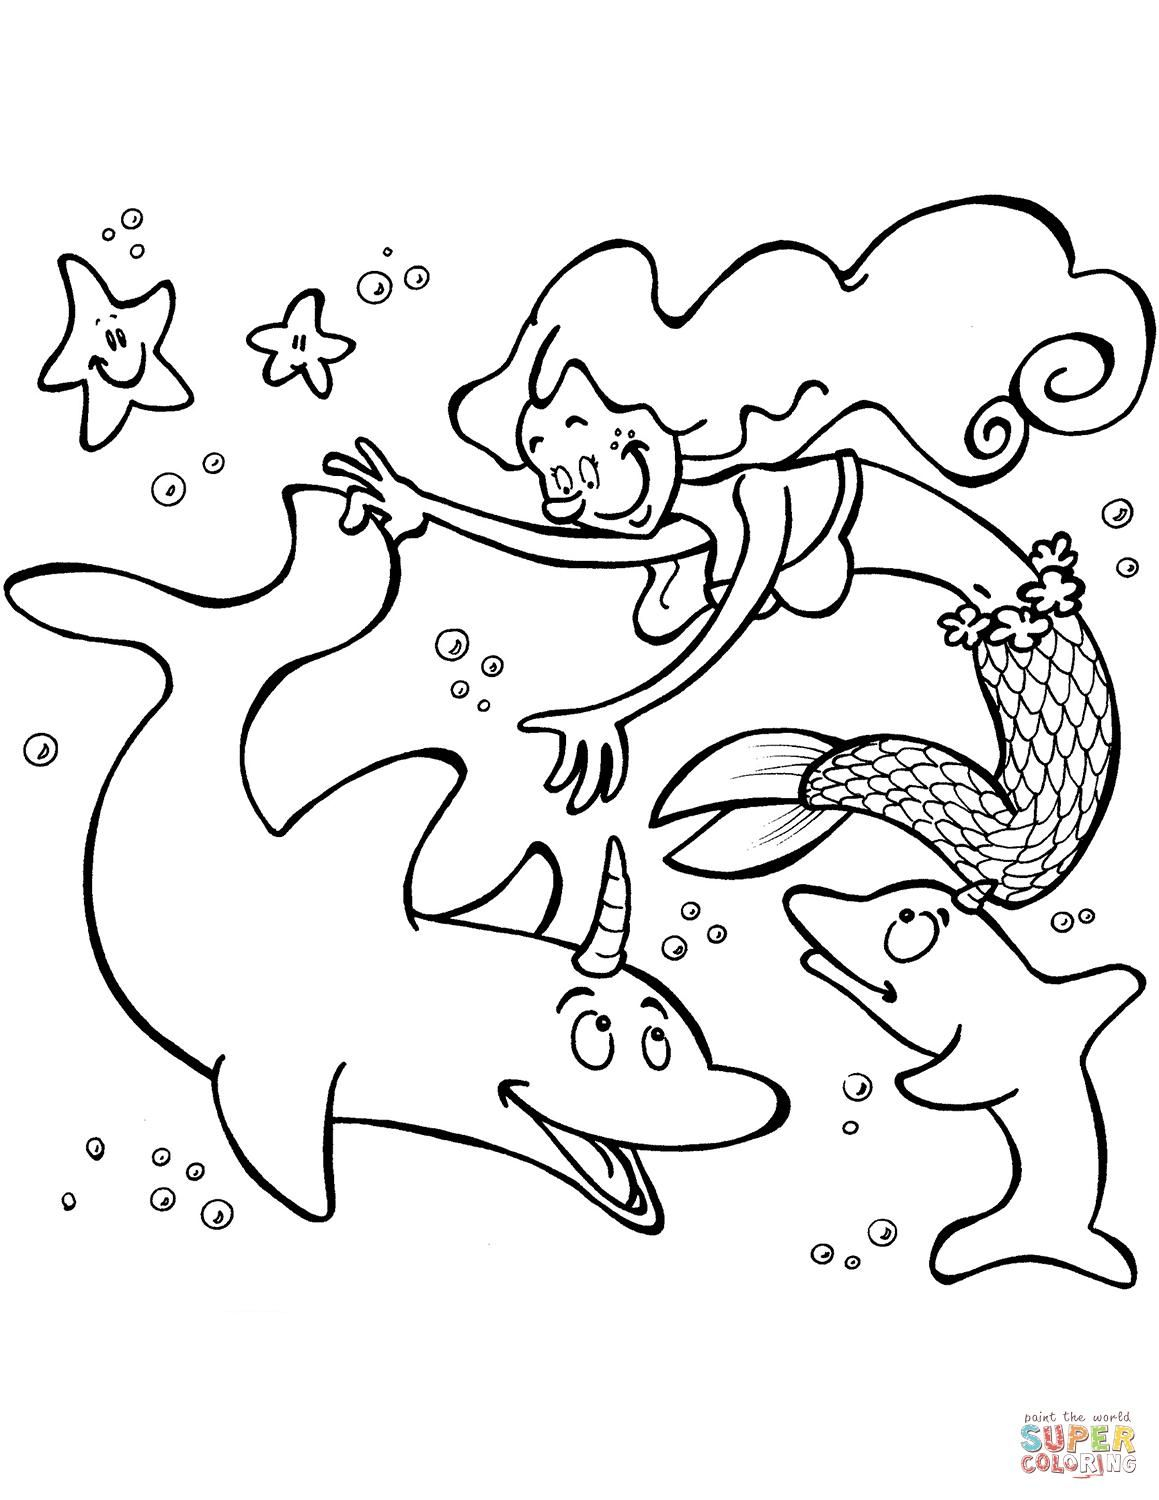 unicorn mermaid coloring pages 54 cute cartoon unicorn coloring pages getcoloringpages mermaid pages coloring unicorn